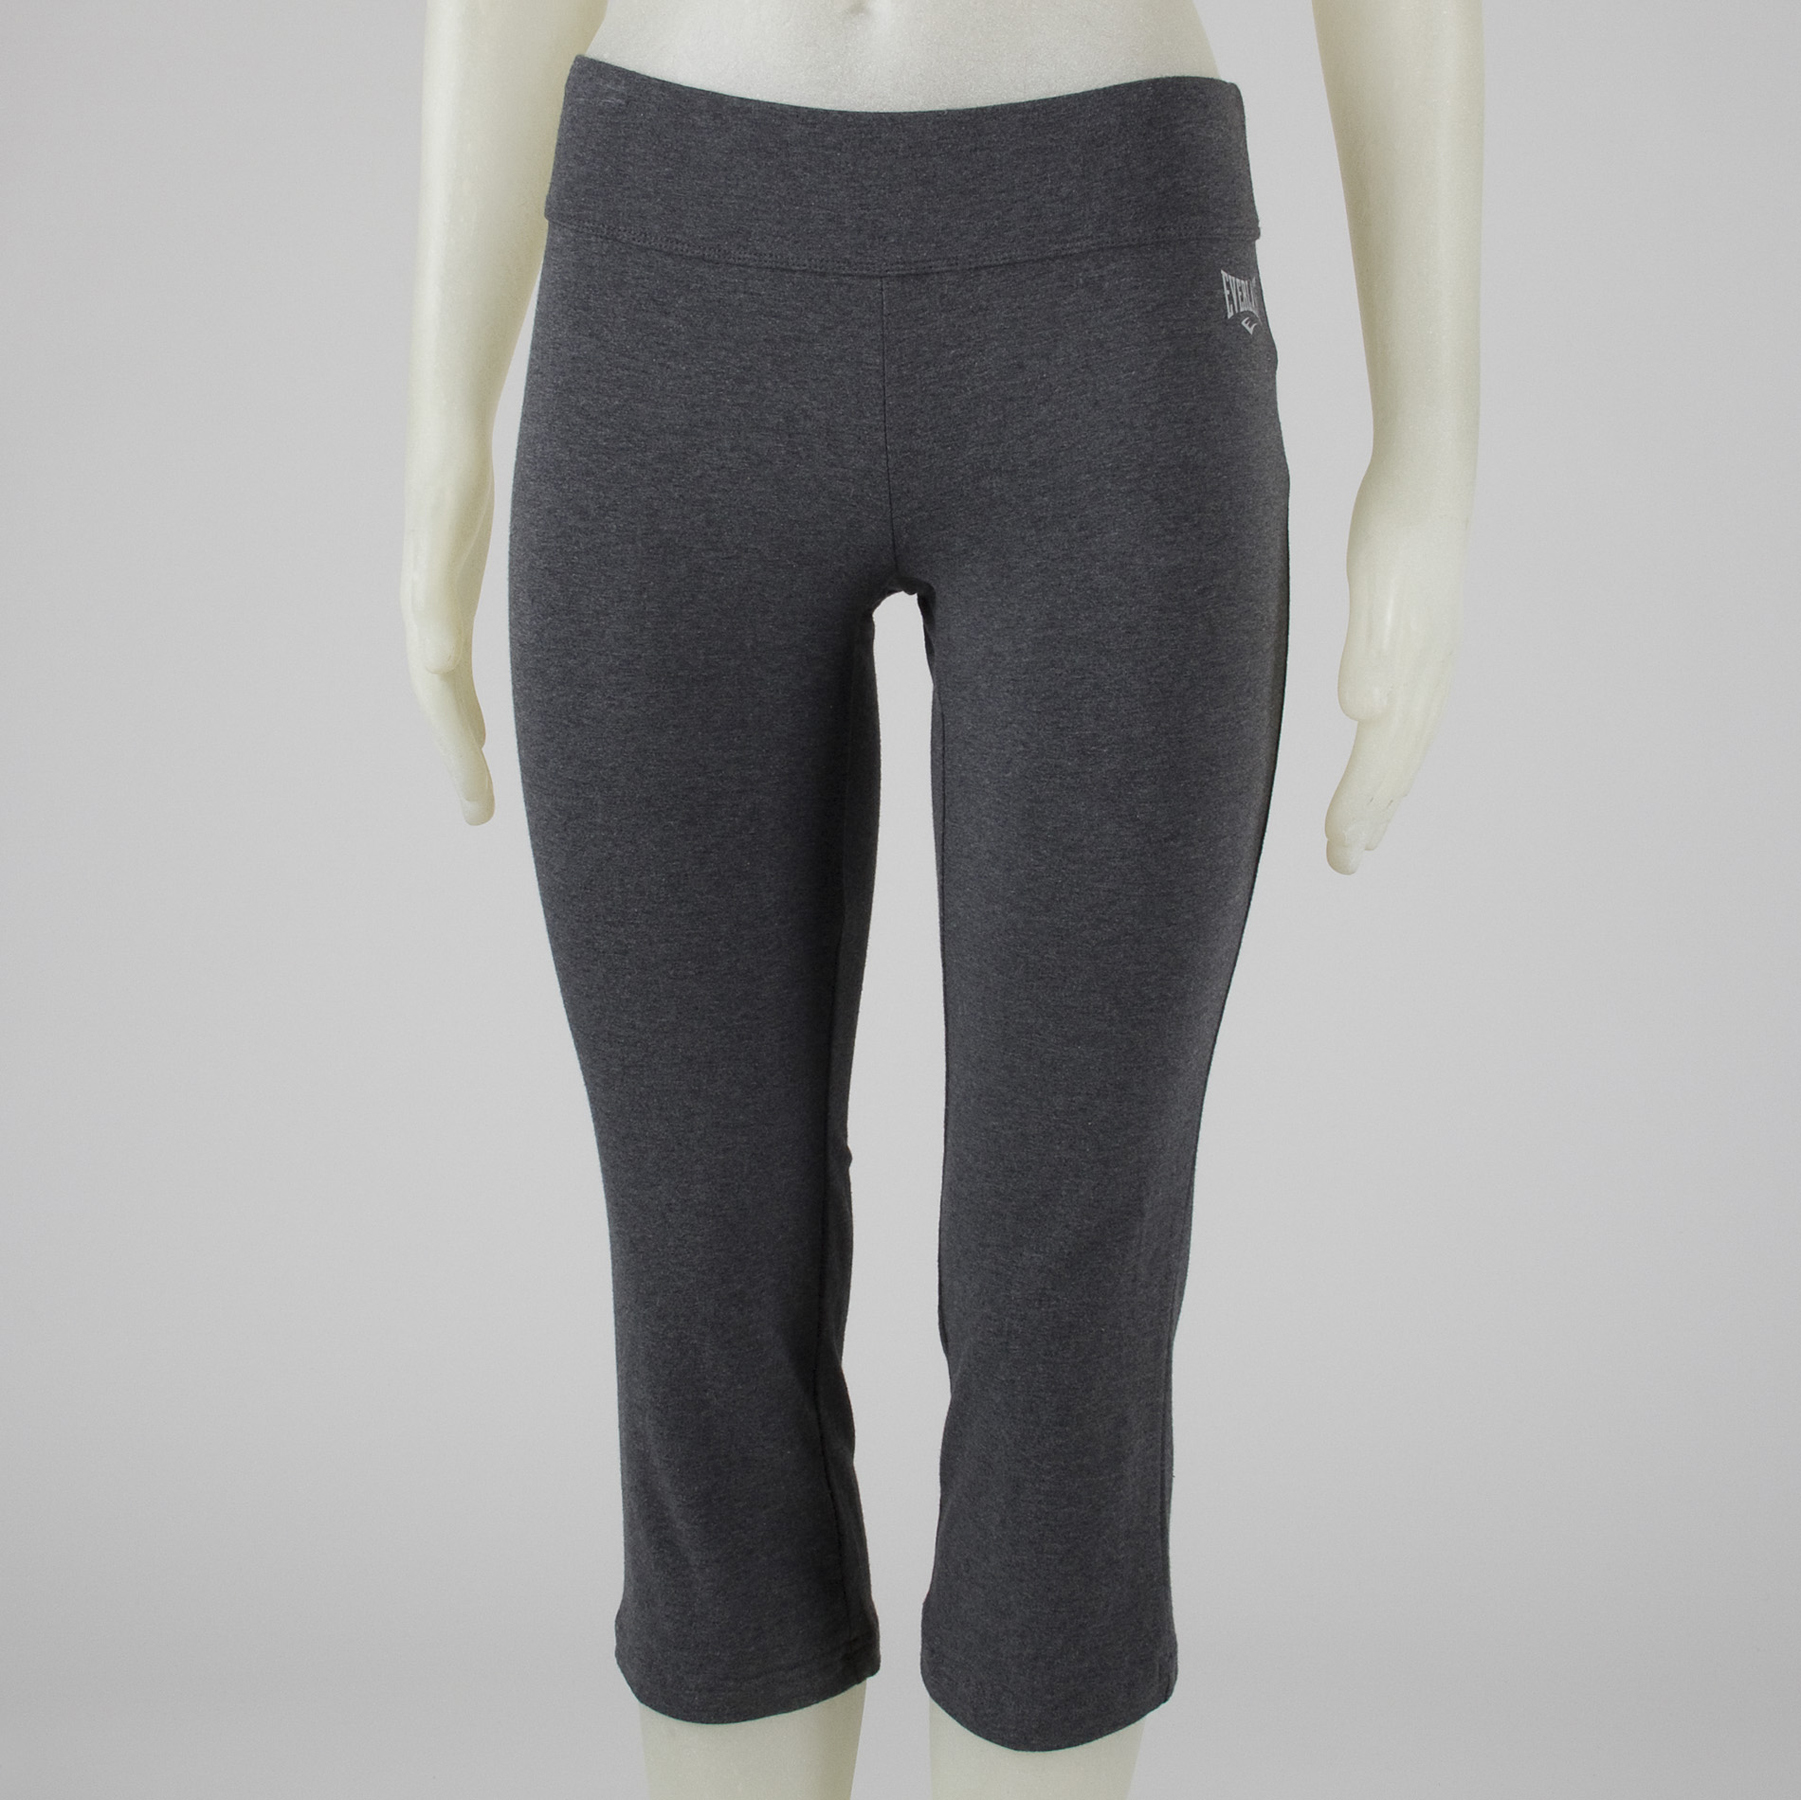 Everlast® Women's Capri Athletic Pants at Sears.com